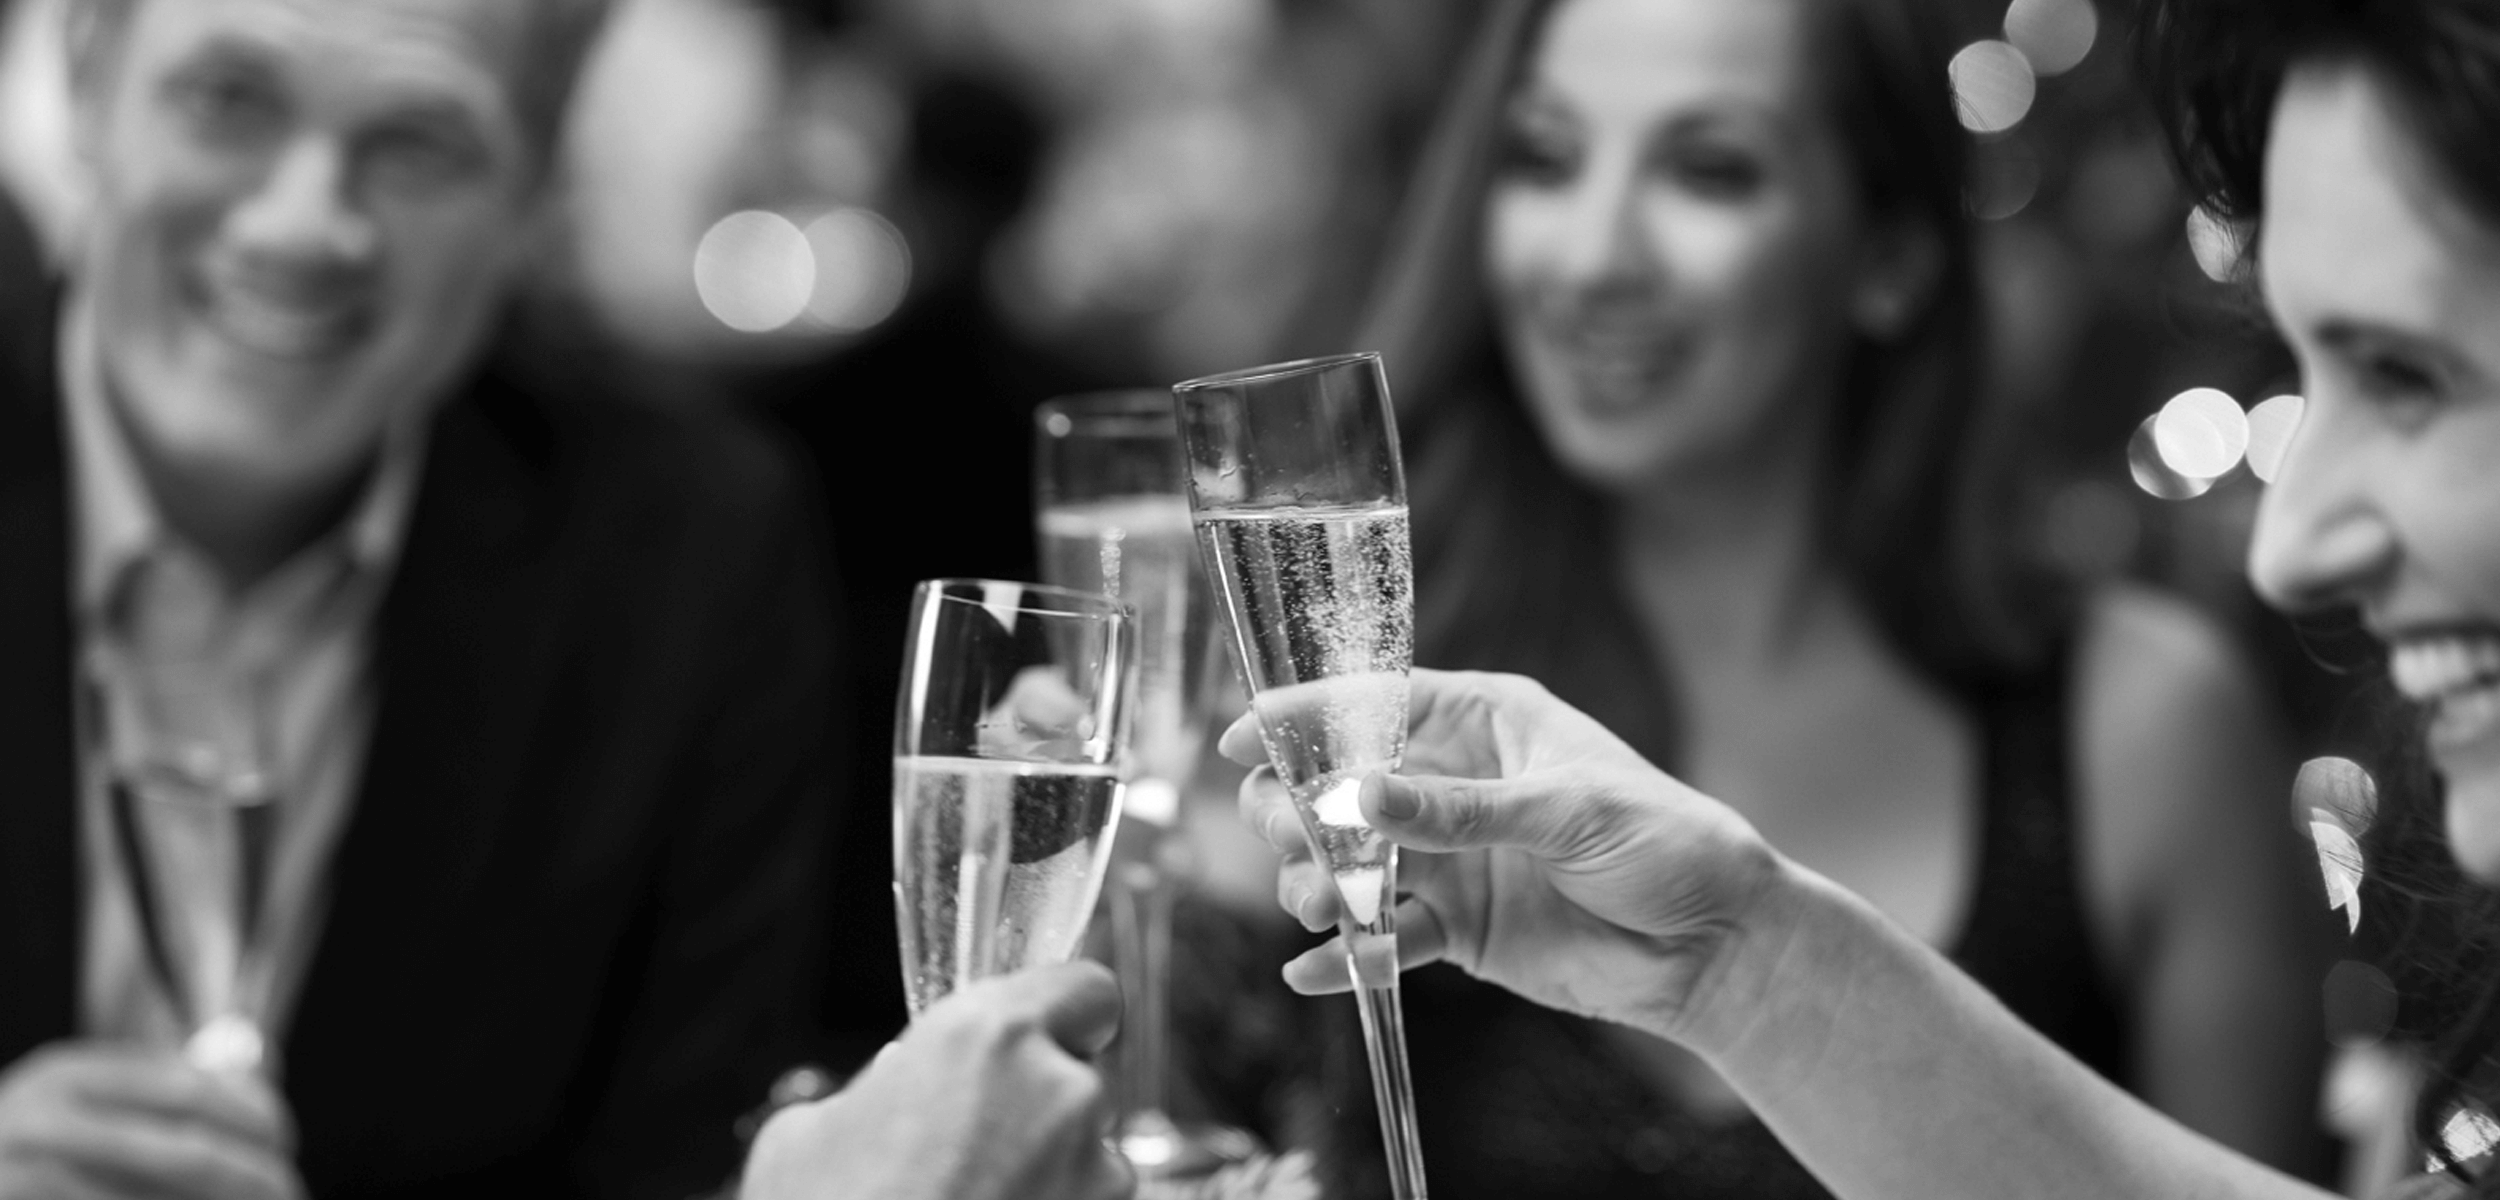 Hands toasting glasses of champagne